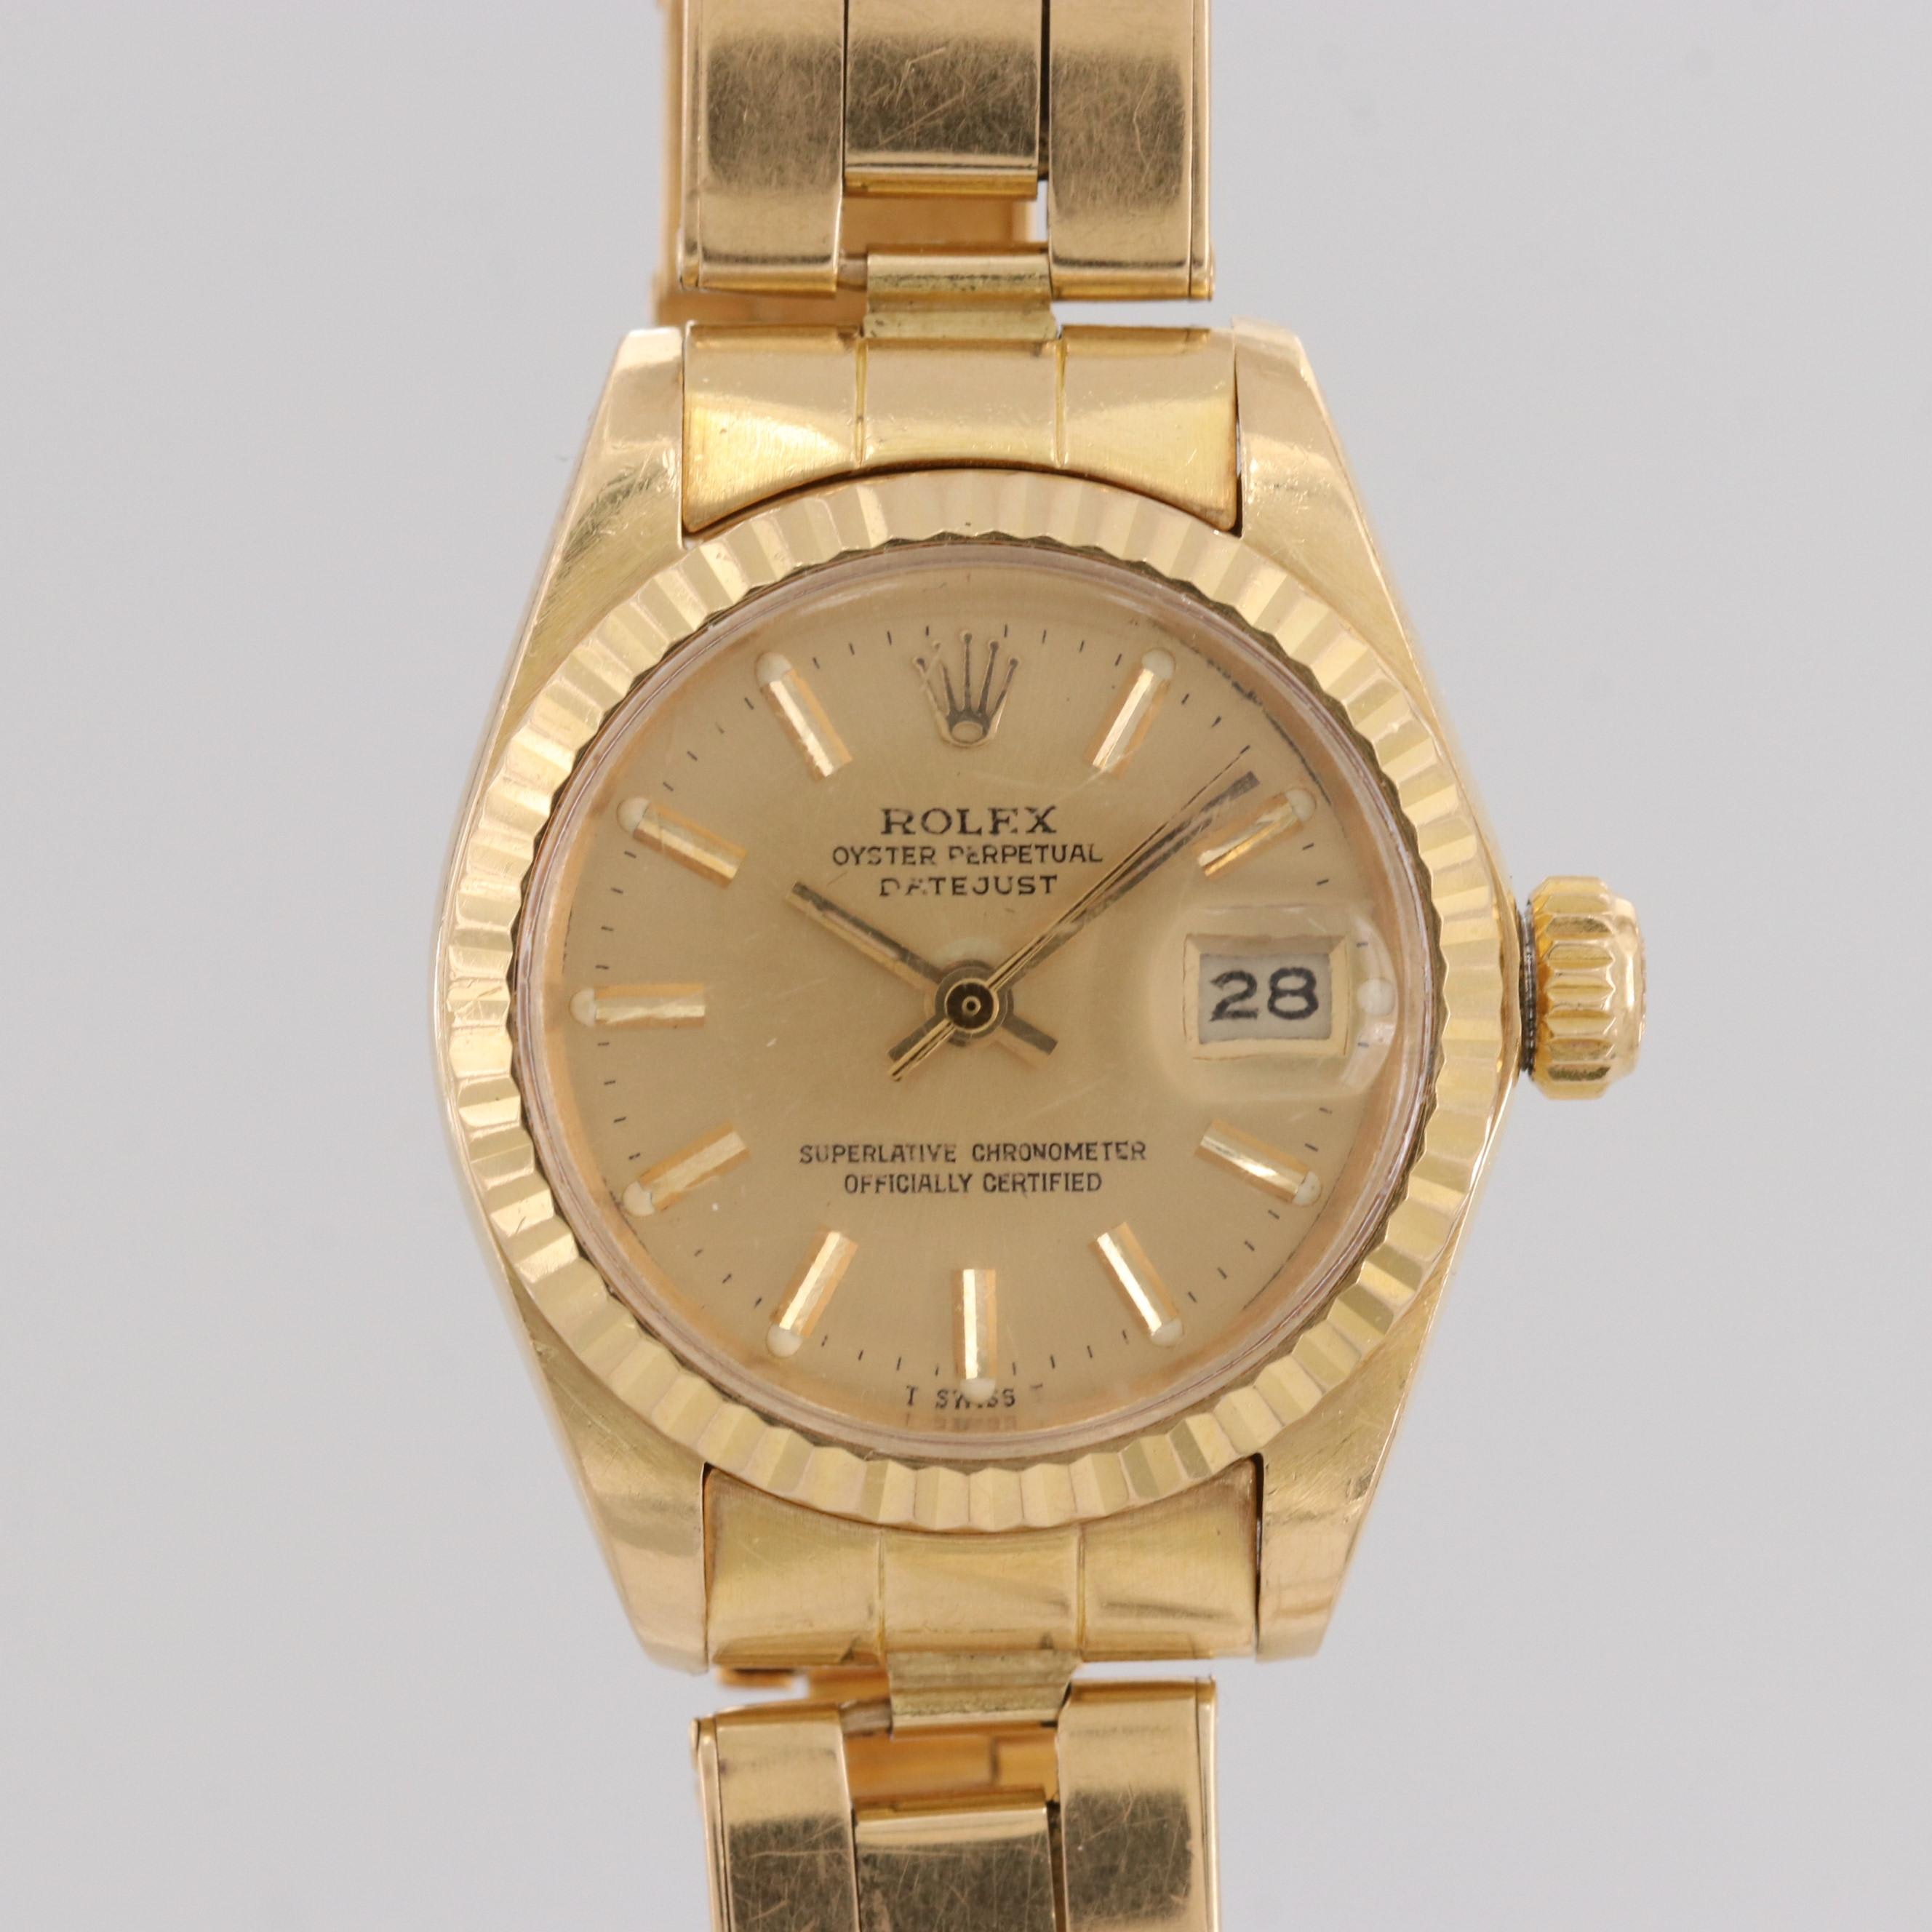 Vintage Rolex Datejust 18K Yellow Gold Automatic Wristwatch, 1979